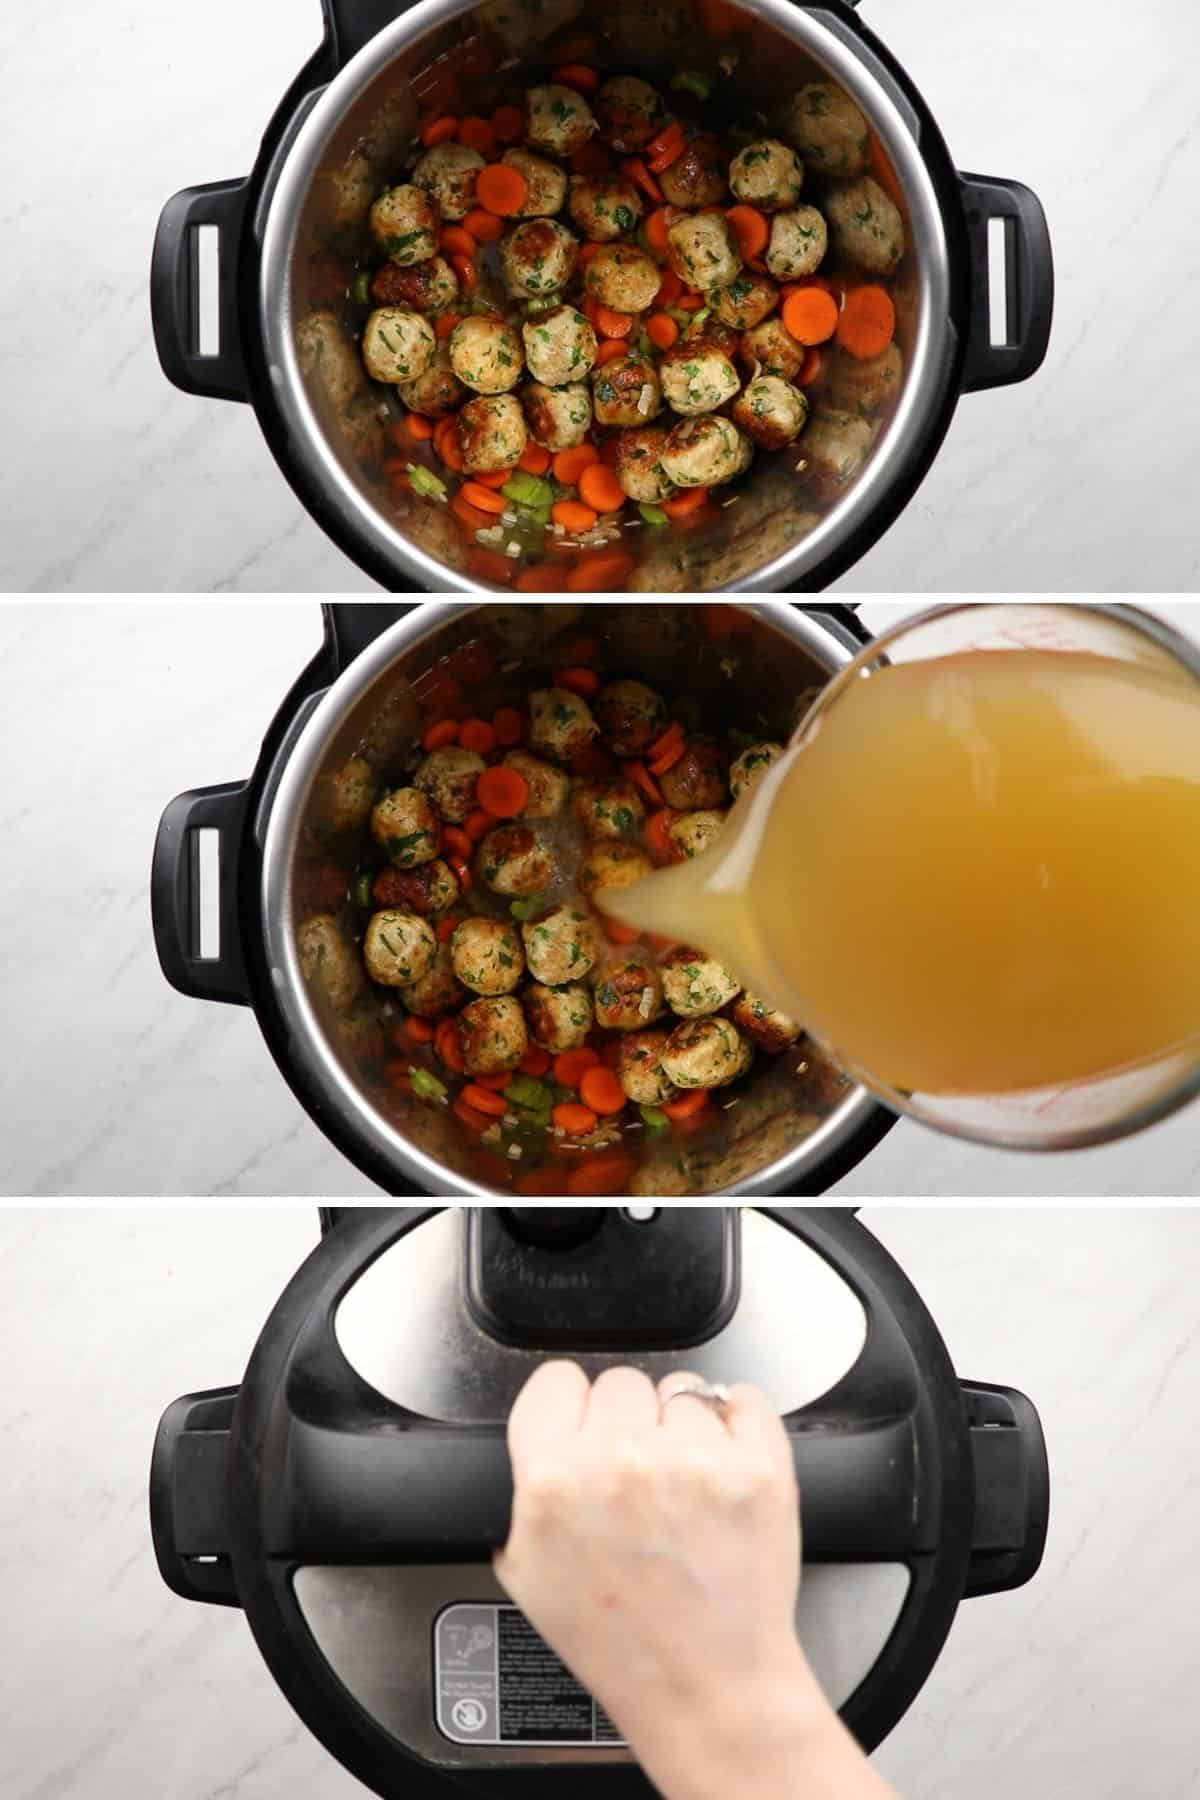 Process photos of adding ingredients to a pressure cooker.